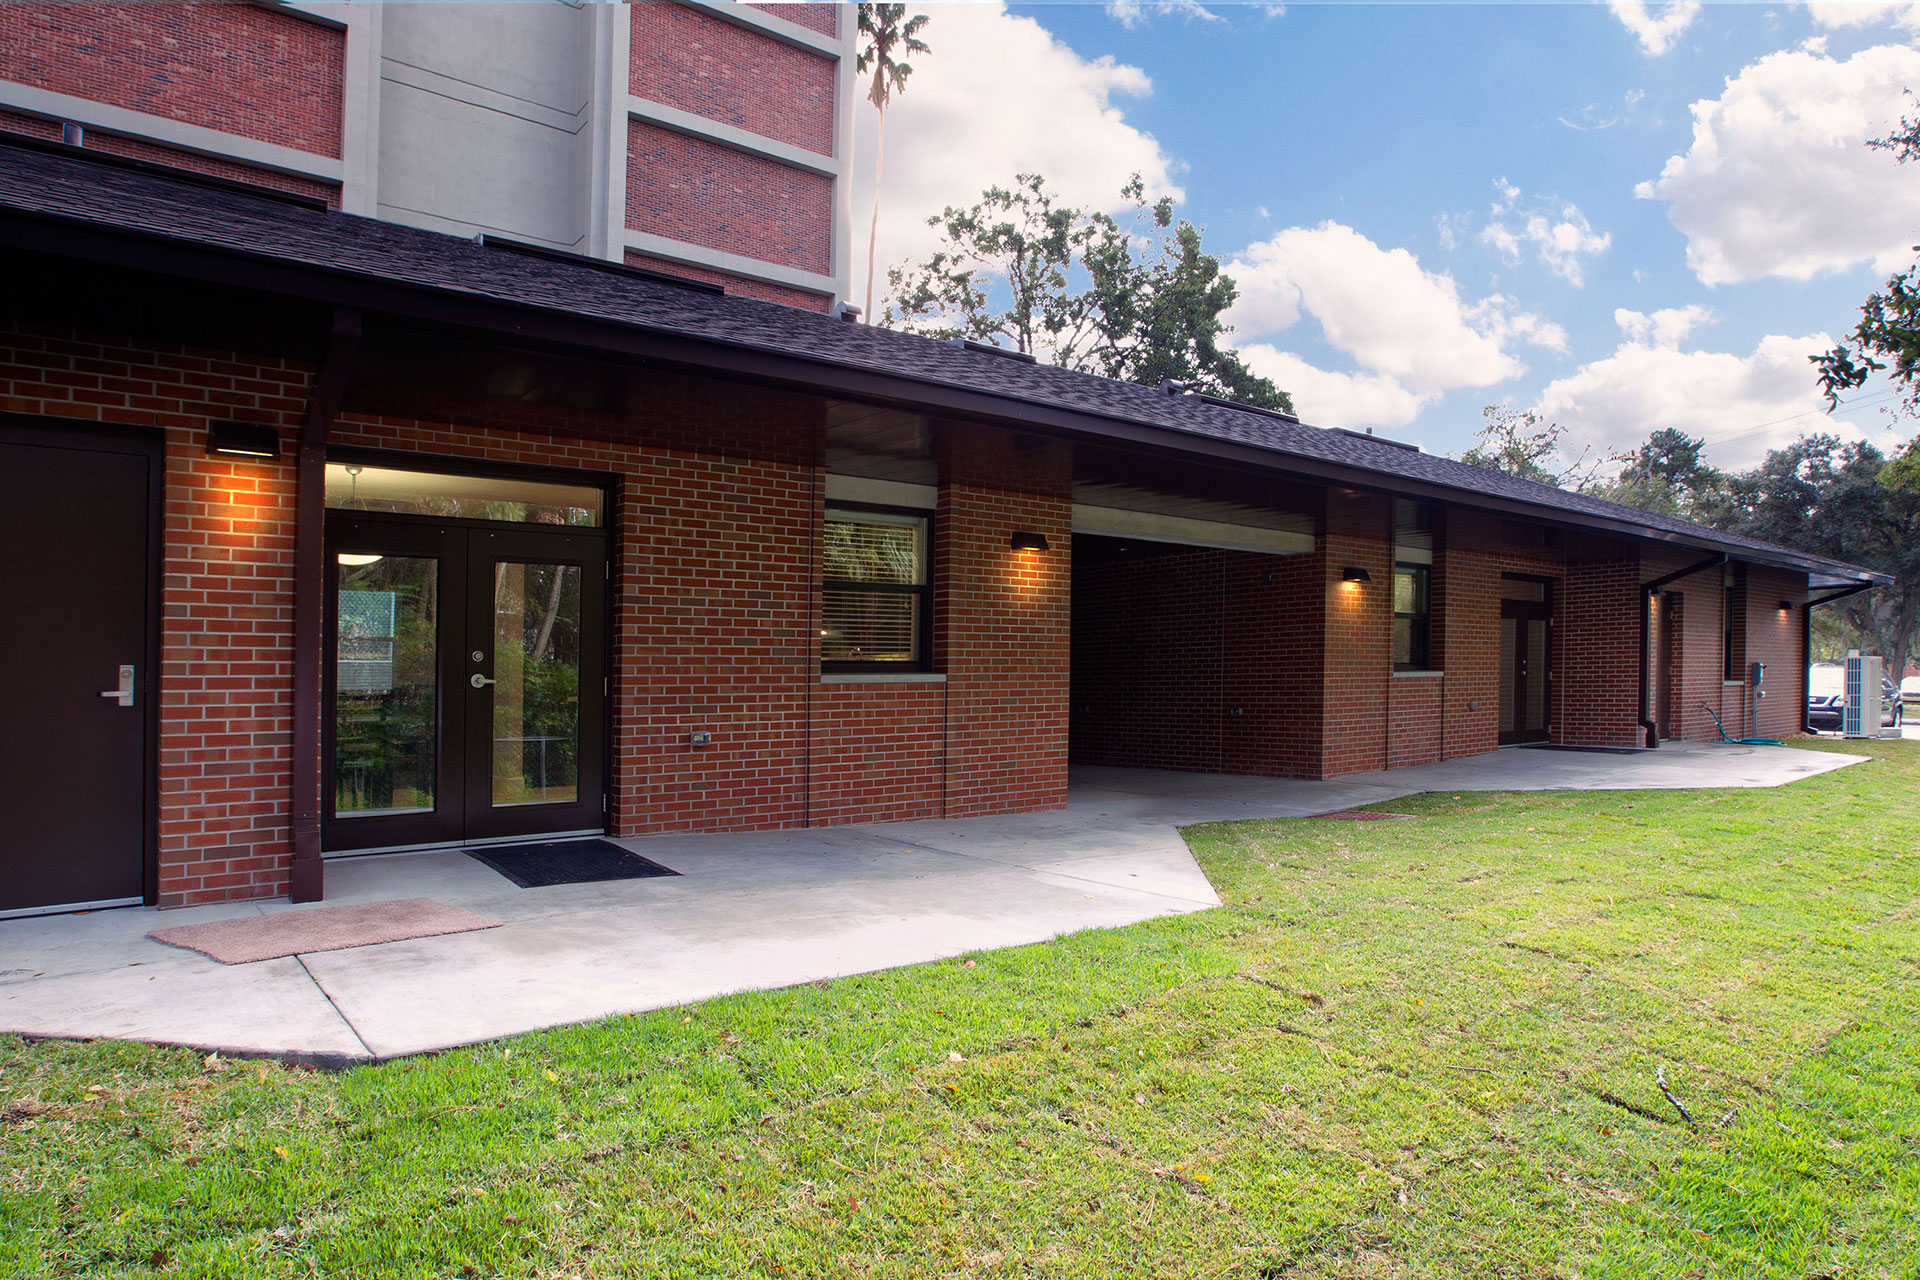 Uf Beaty Creekside Apartments